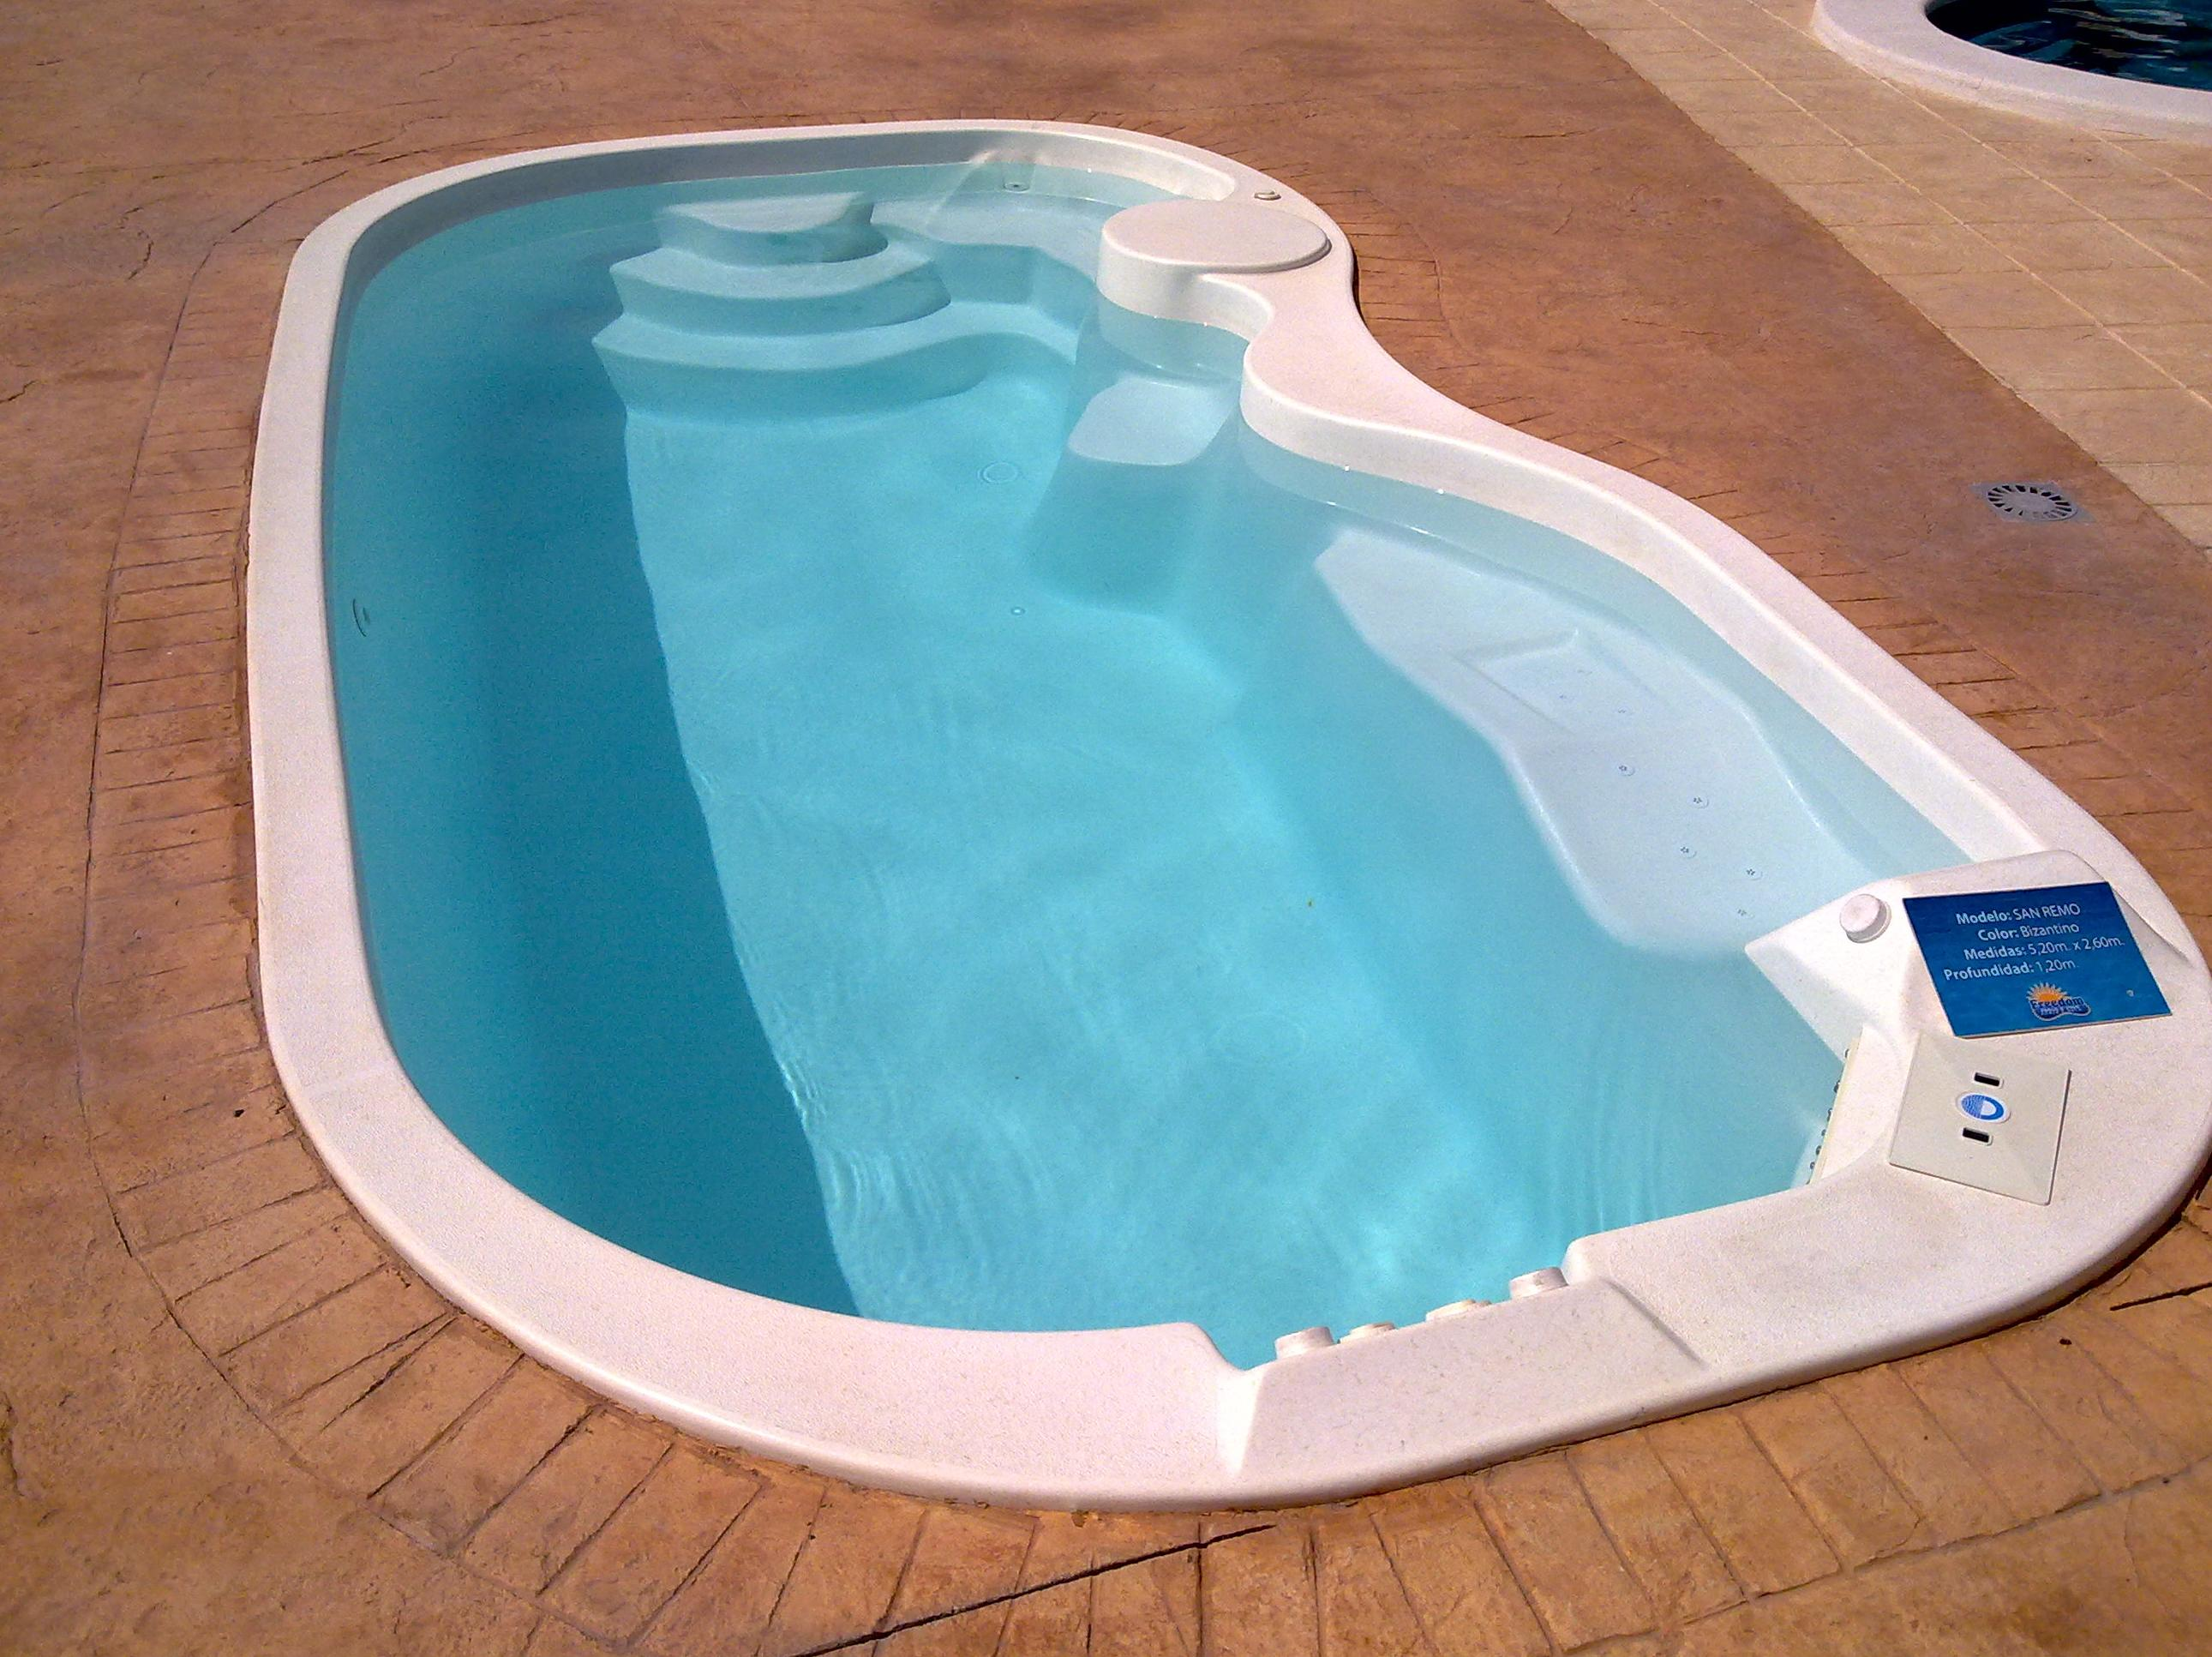 Piscinas freedom pool piscinas y accesorios de ardigral for Piscinas con gresite blanco